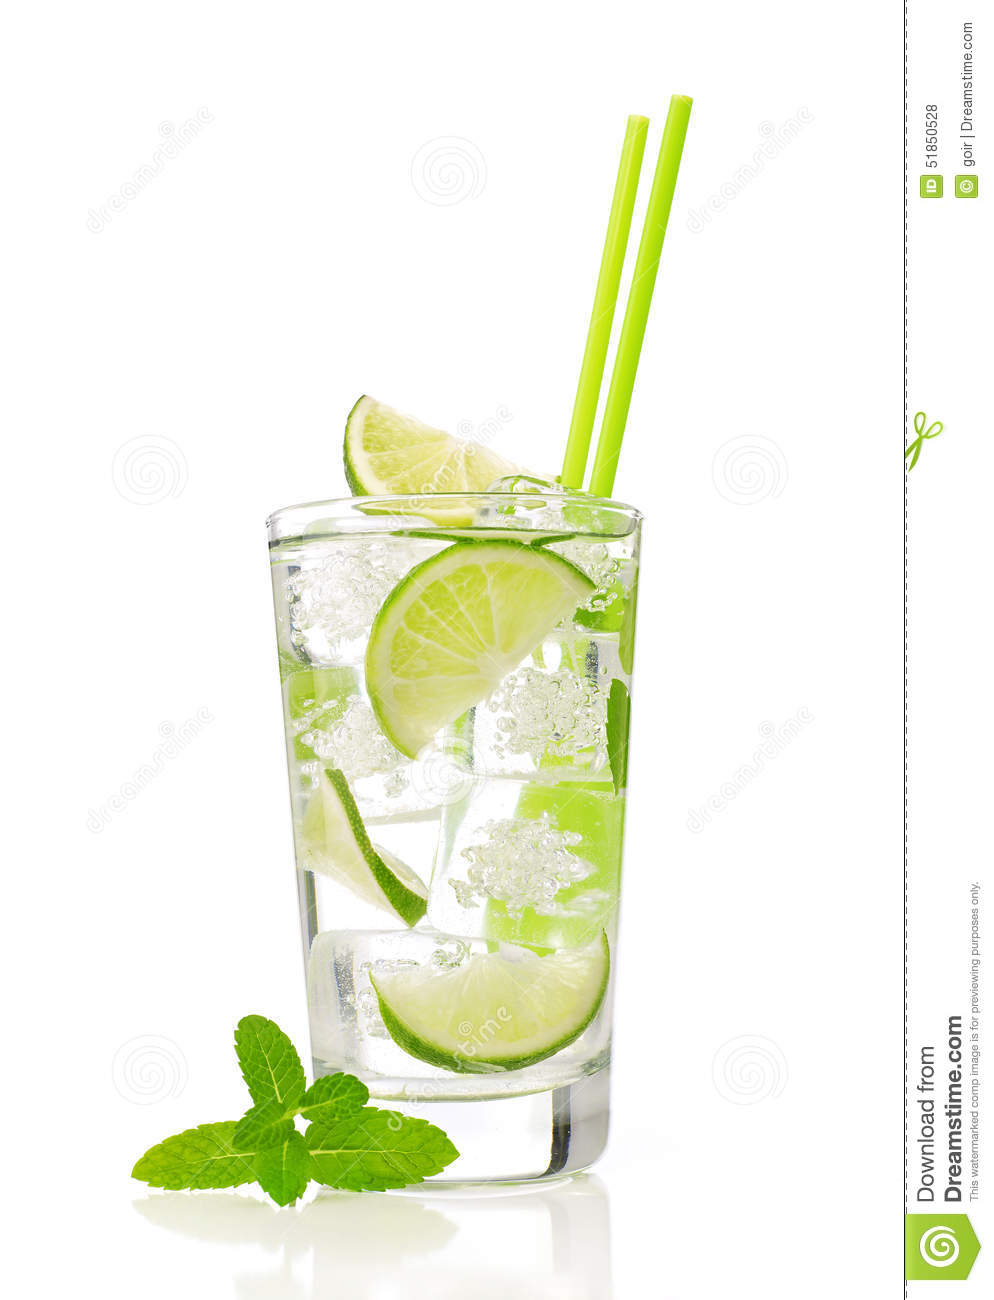 Mojito cocktail with lime and mint, isolated on white.